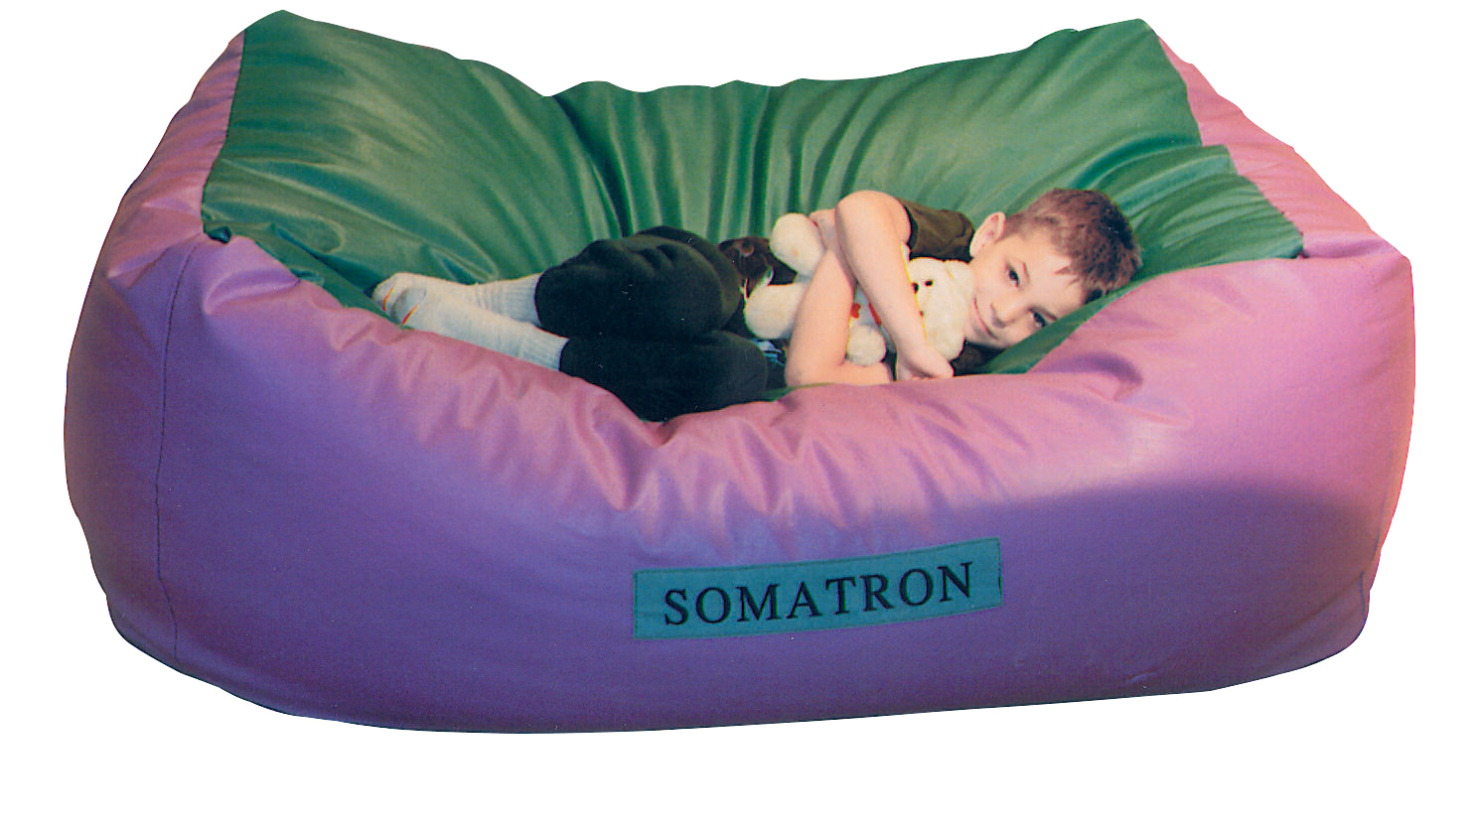 Somatron Body Pillow With Vibrations 60 X 36 24 In Leather Like Vinyl